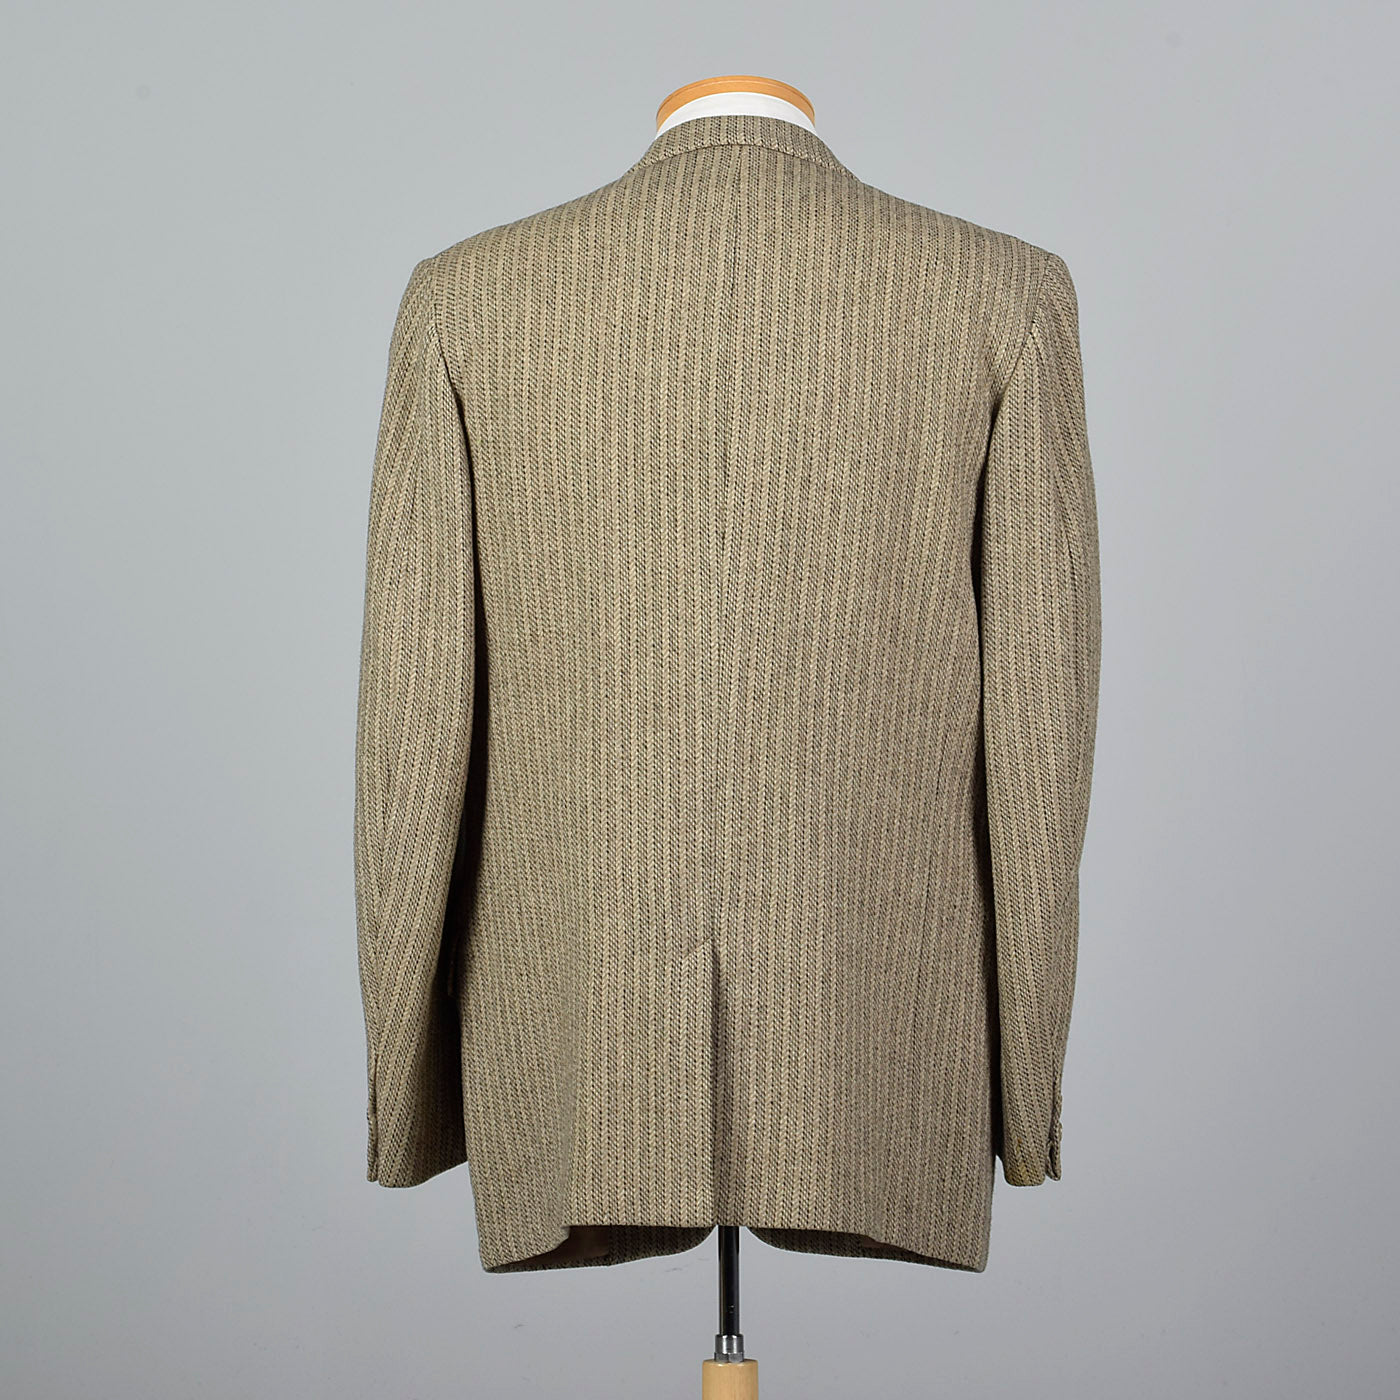 1950s Tan Tweed Stripe Jacket with Convertible Pockets